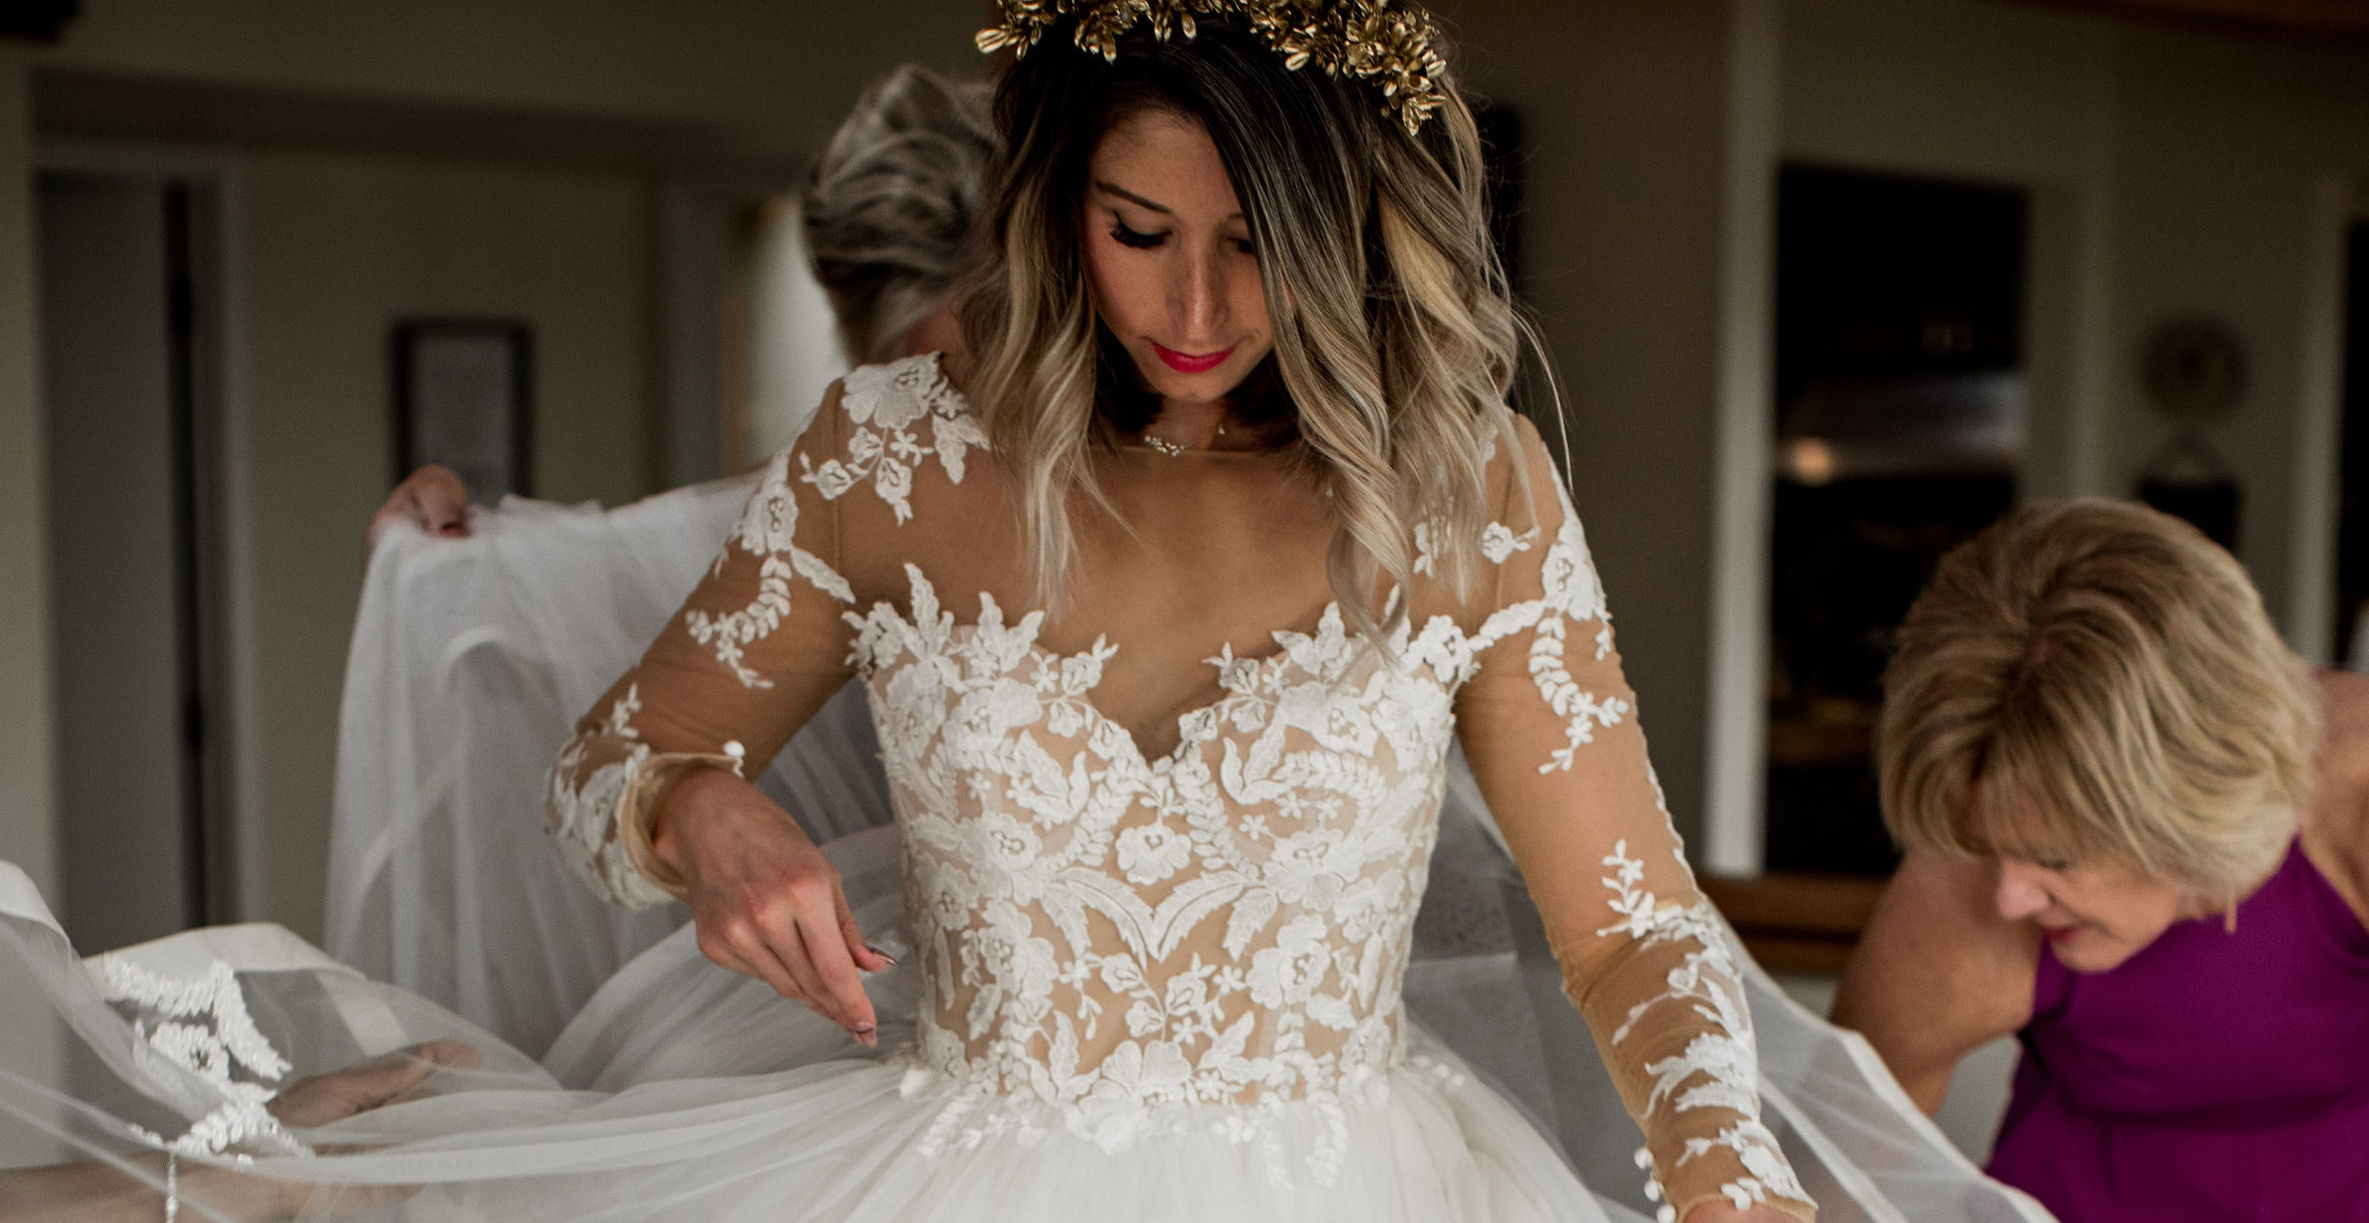 Anomalie is the best place to customize lace wedding dresses online.